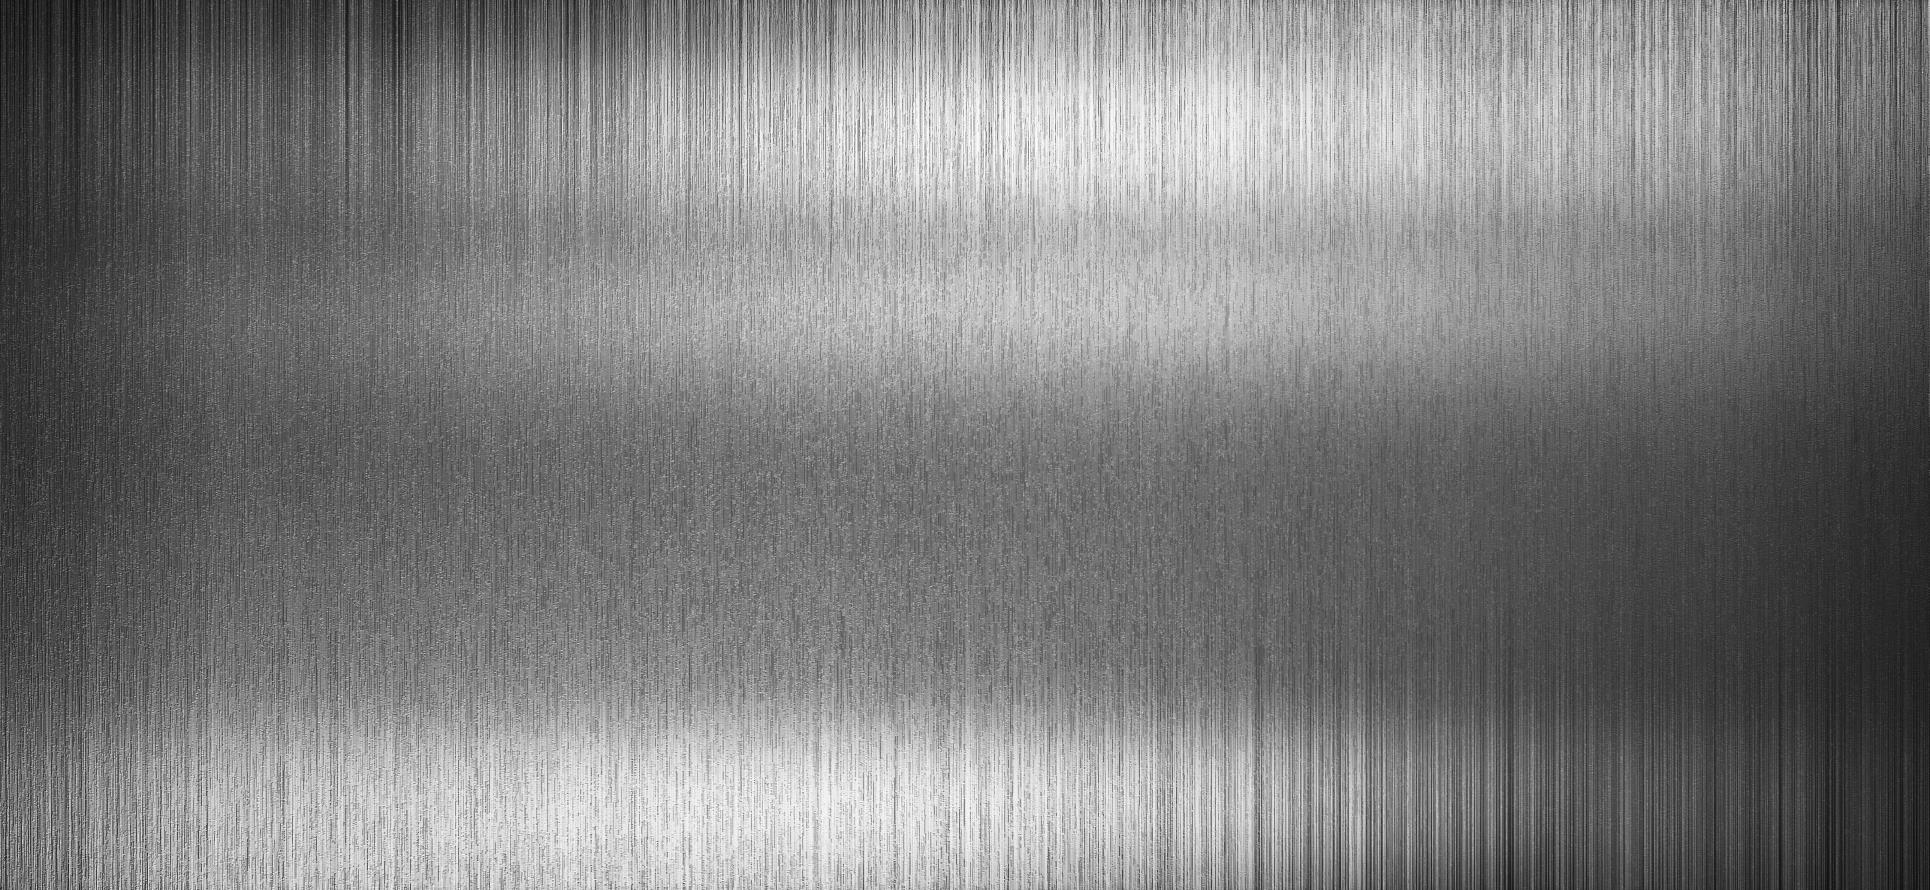 brushed stainless steel metal background  brushed  stainless  steel background image for free